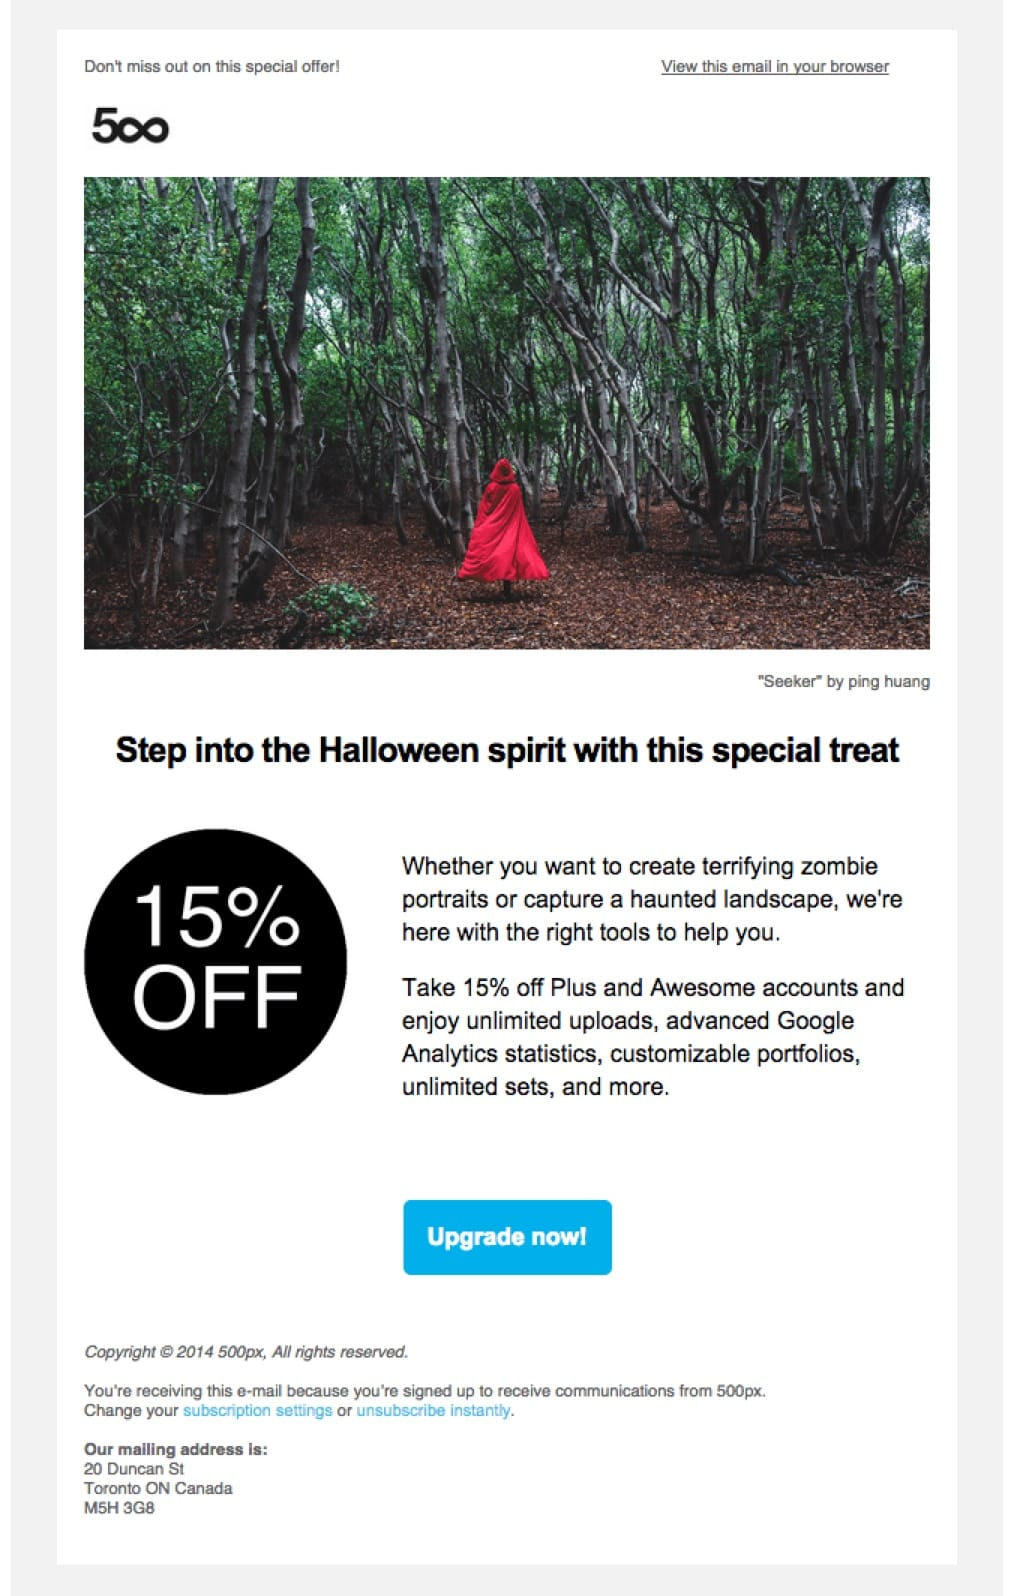 promotional email example 500px (special offer)